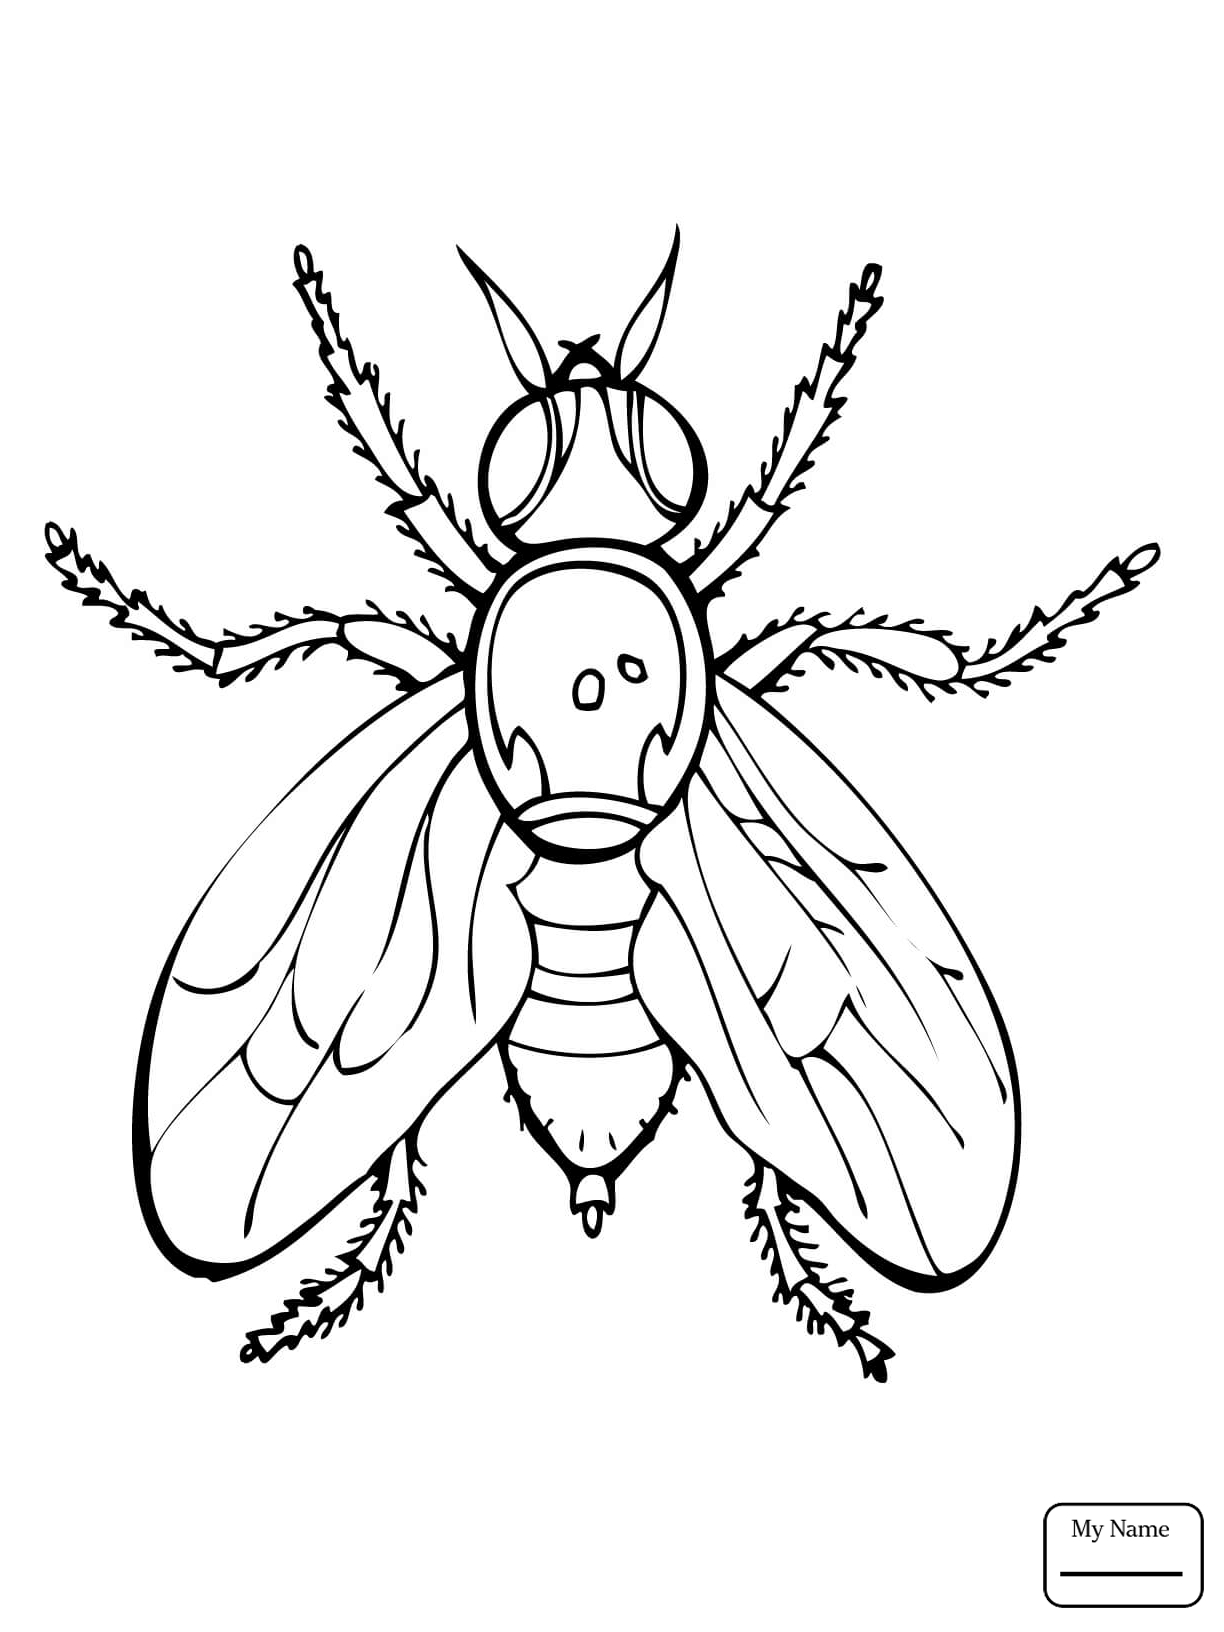 Firefly Insect Drawing at GetDrawings.com | Free for personal use ...